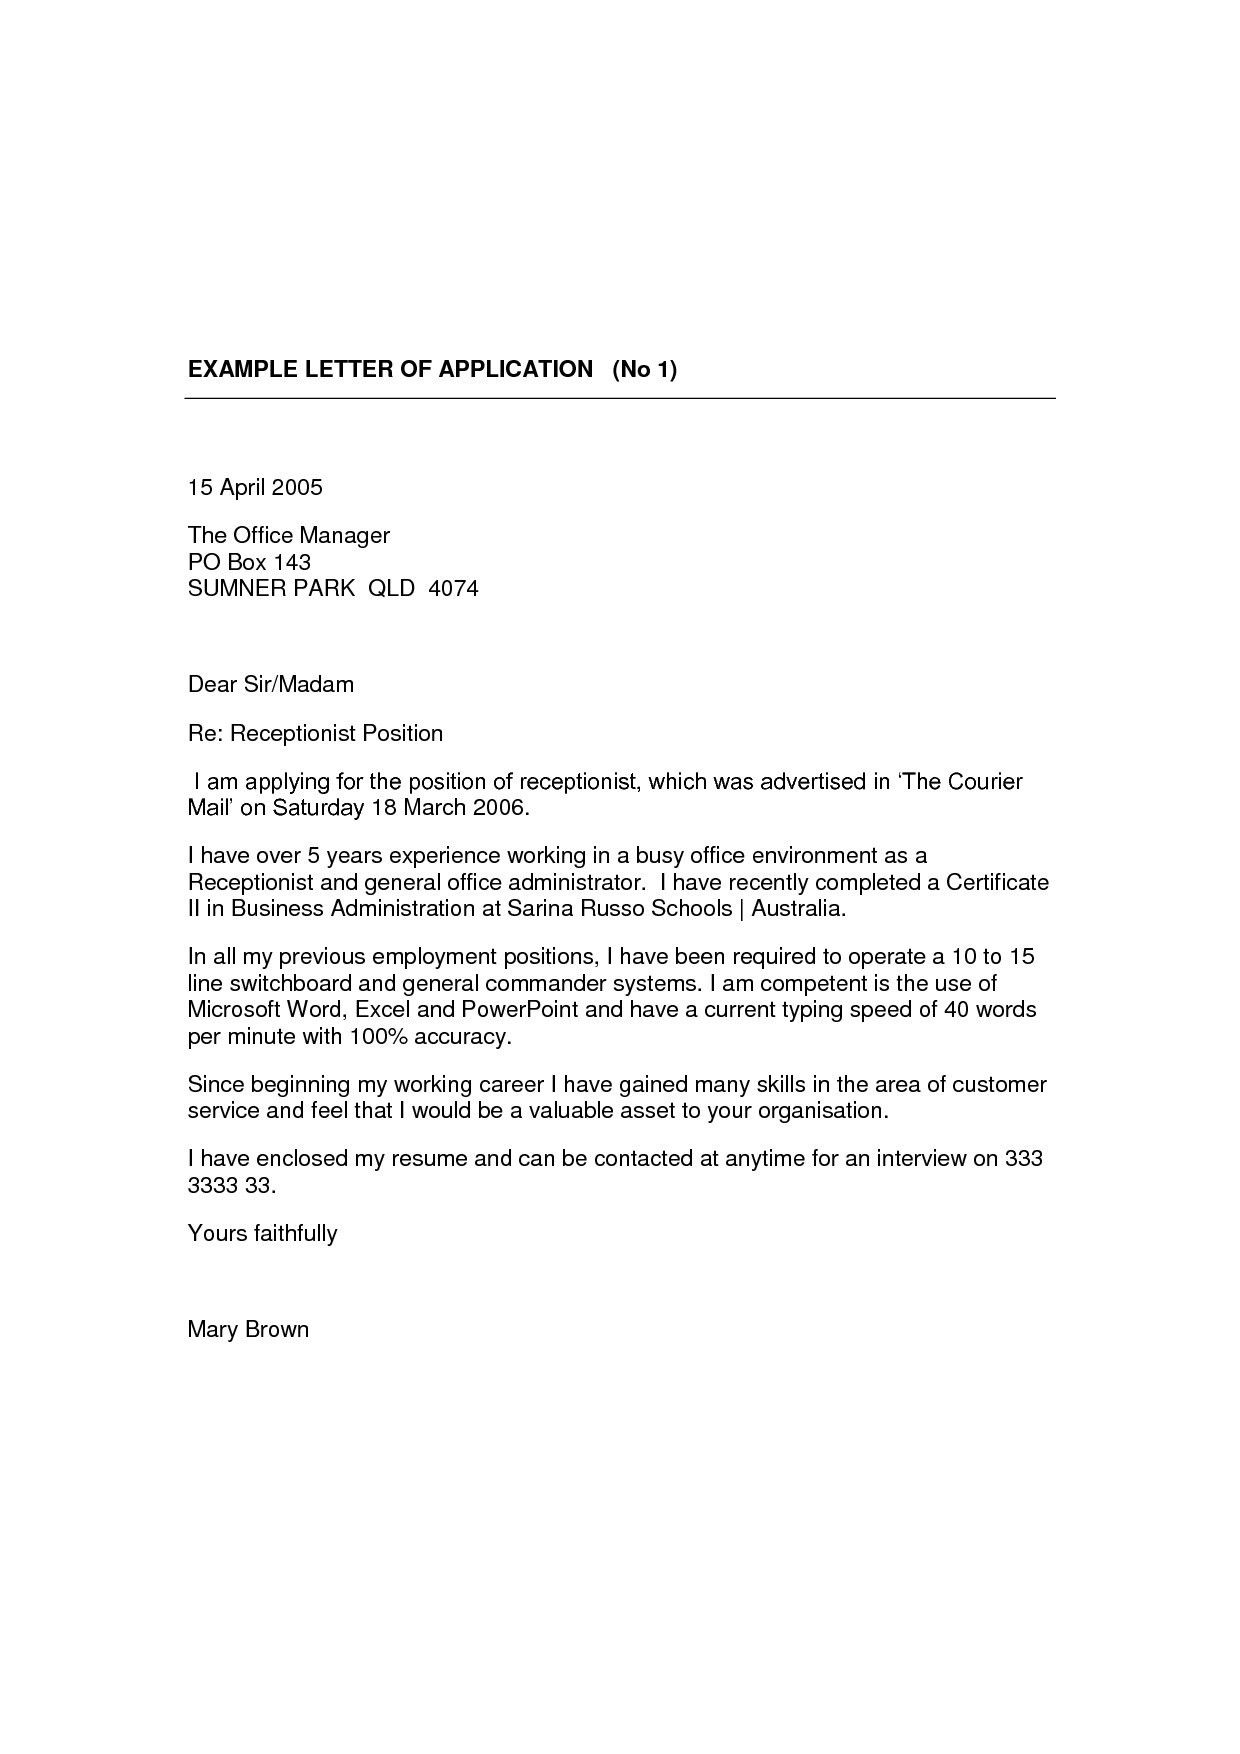 Fresh Cover Letter for Part Time Job No Experience Cover